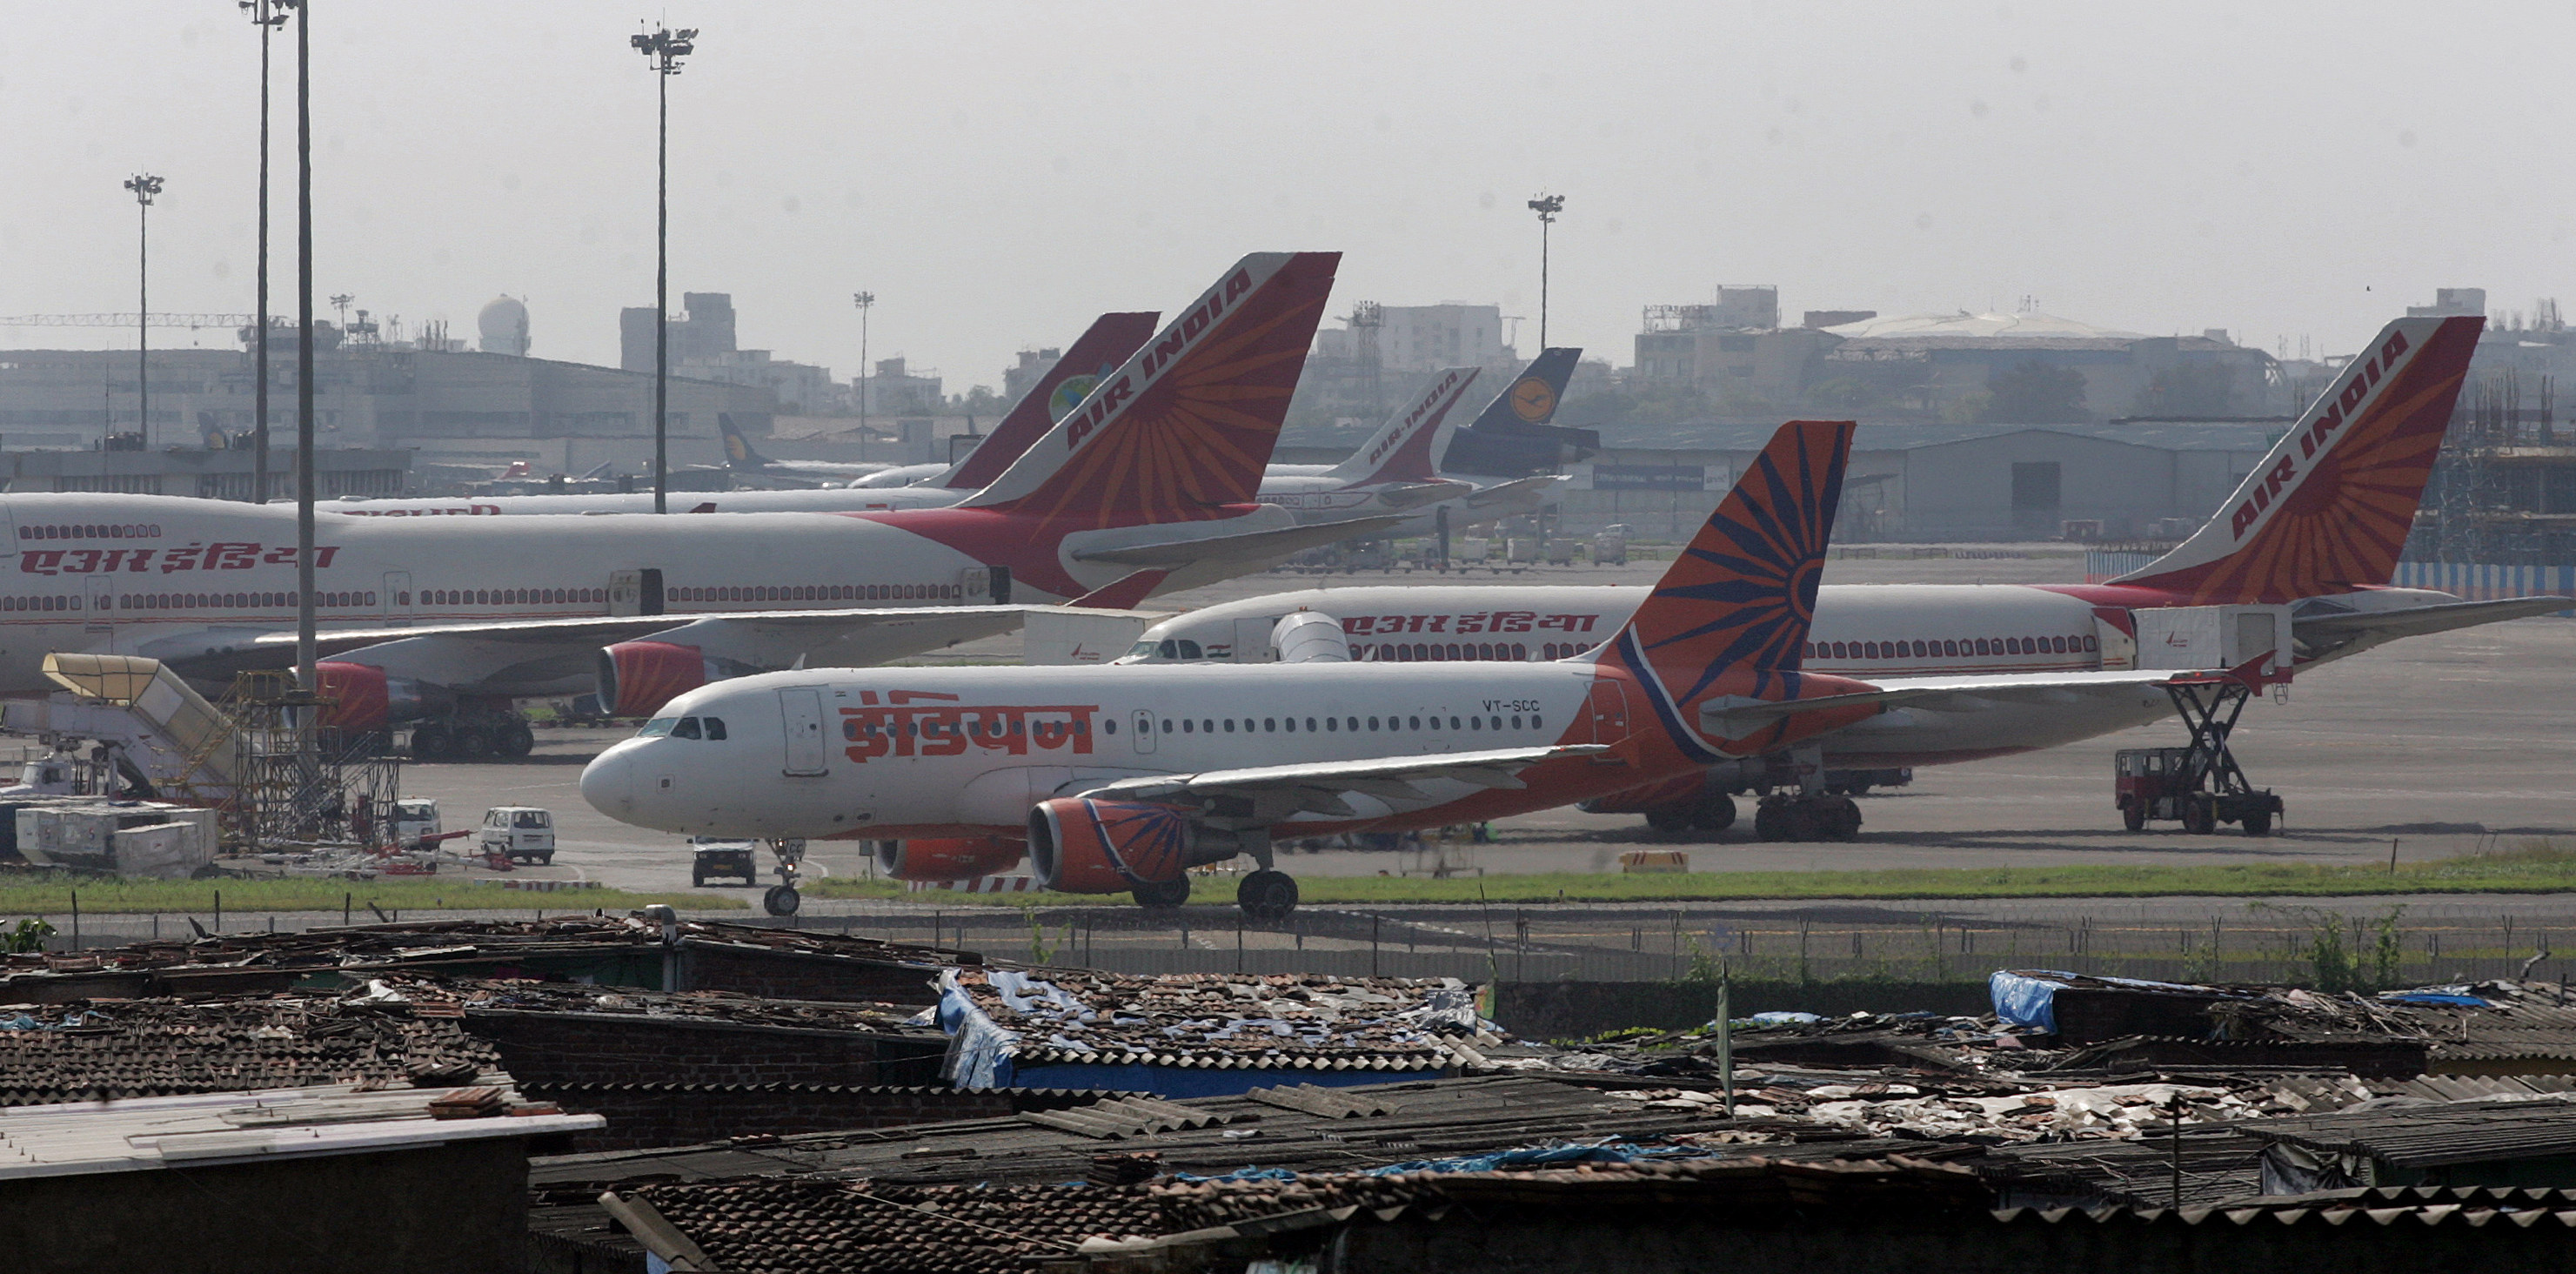 Domestic flights in India increase by 20%